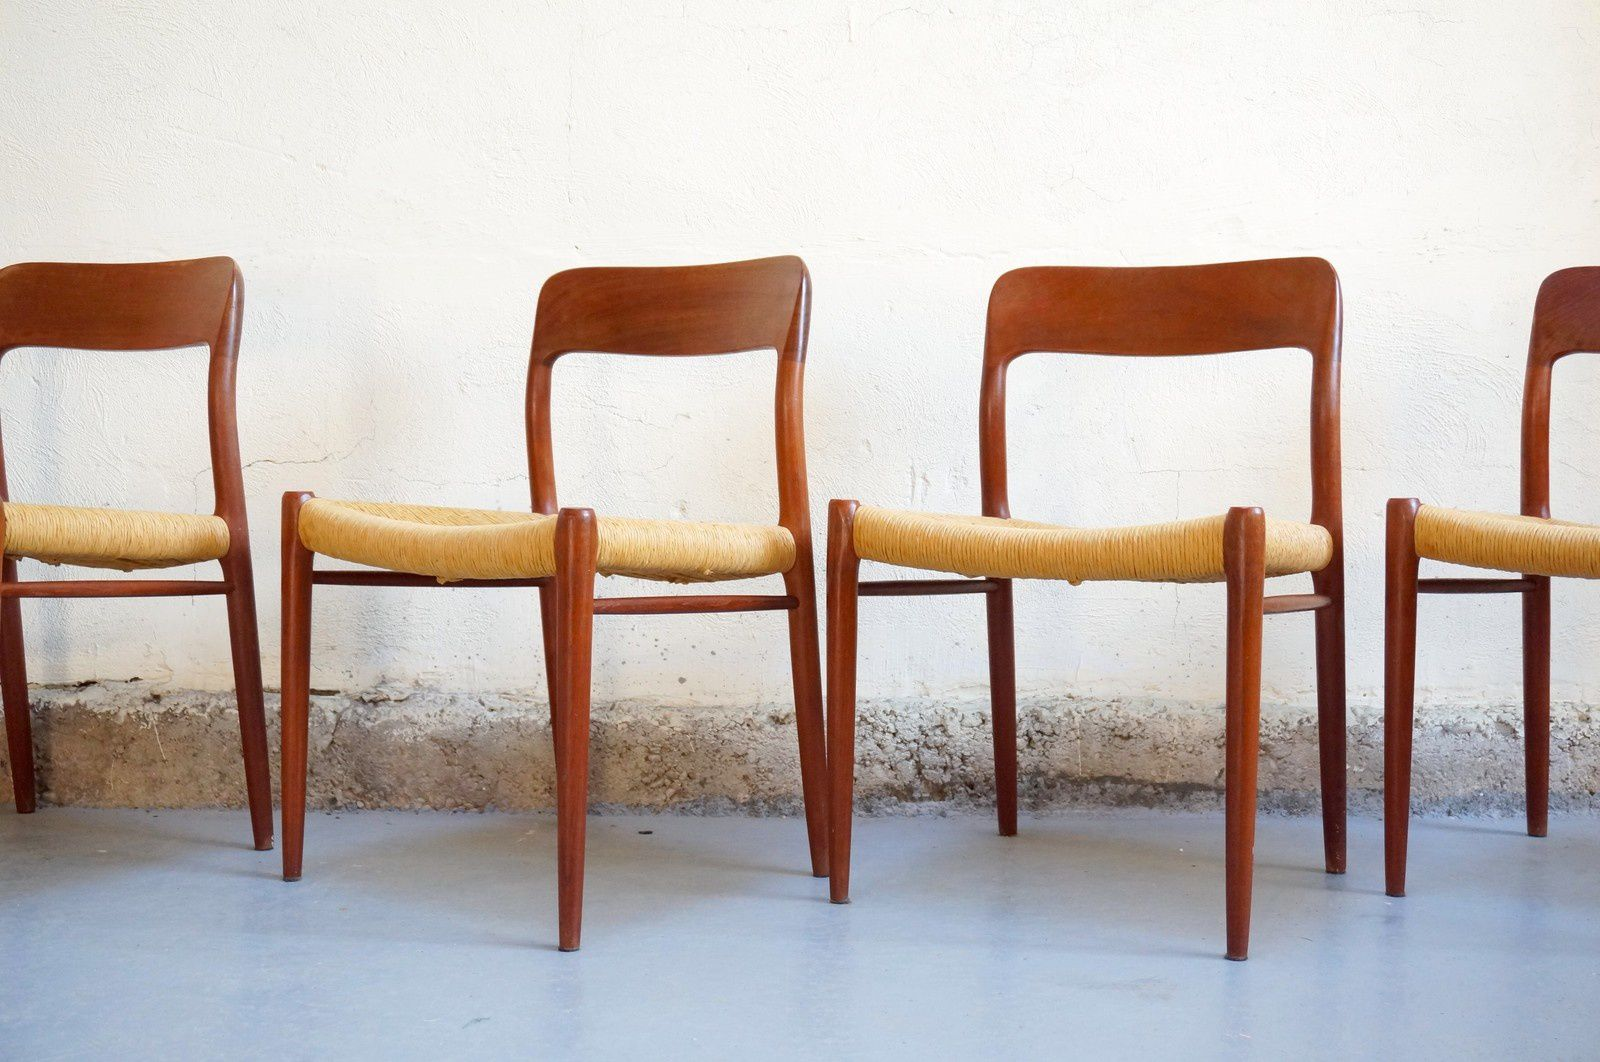 Chaises Scandinaves Vintage Chaises O Moller Design Scandinave Teck Massif Vintage